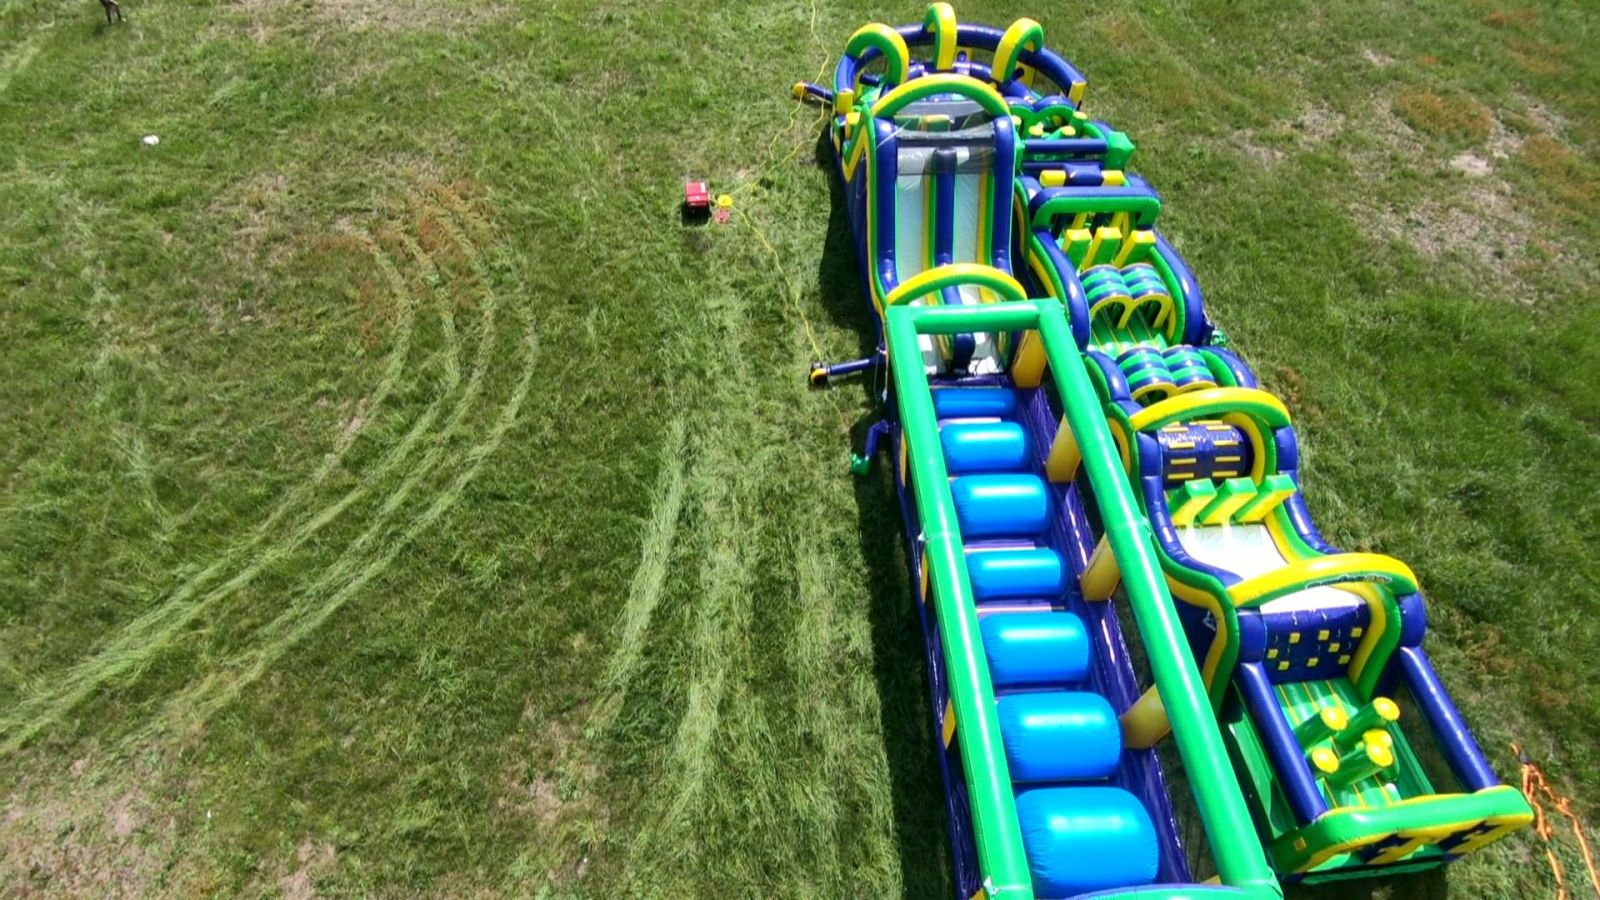 Radical run full 5 piece obstacle course